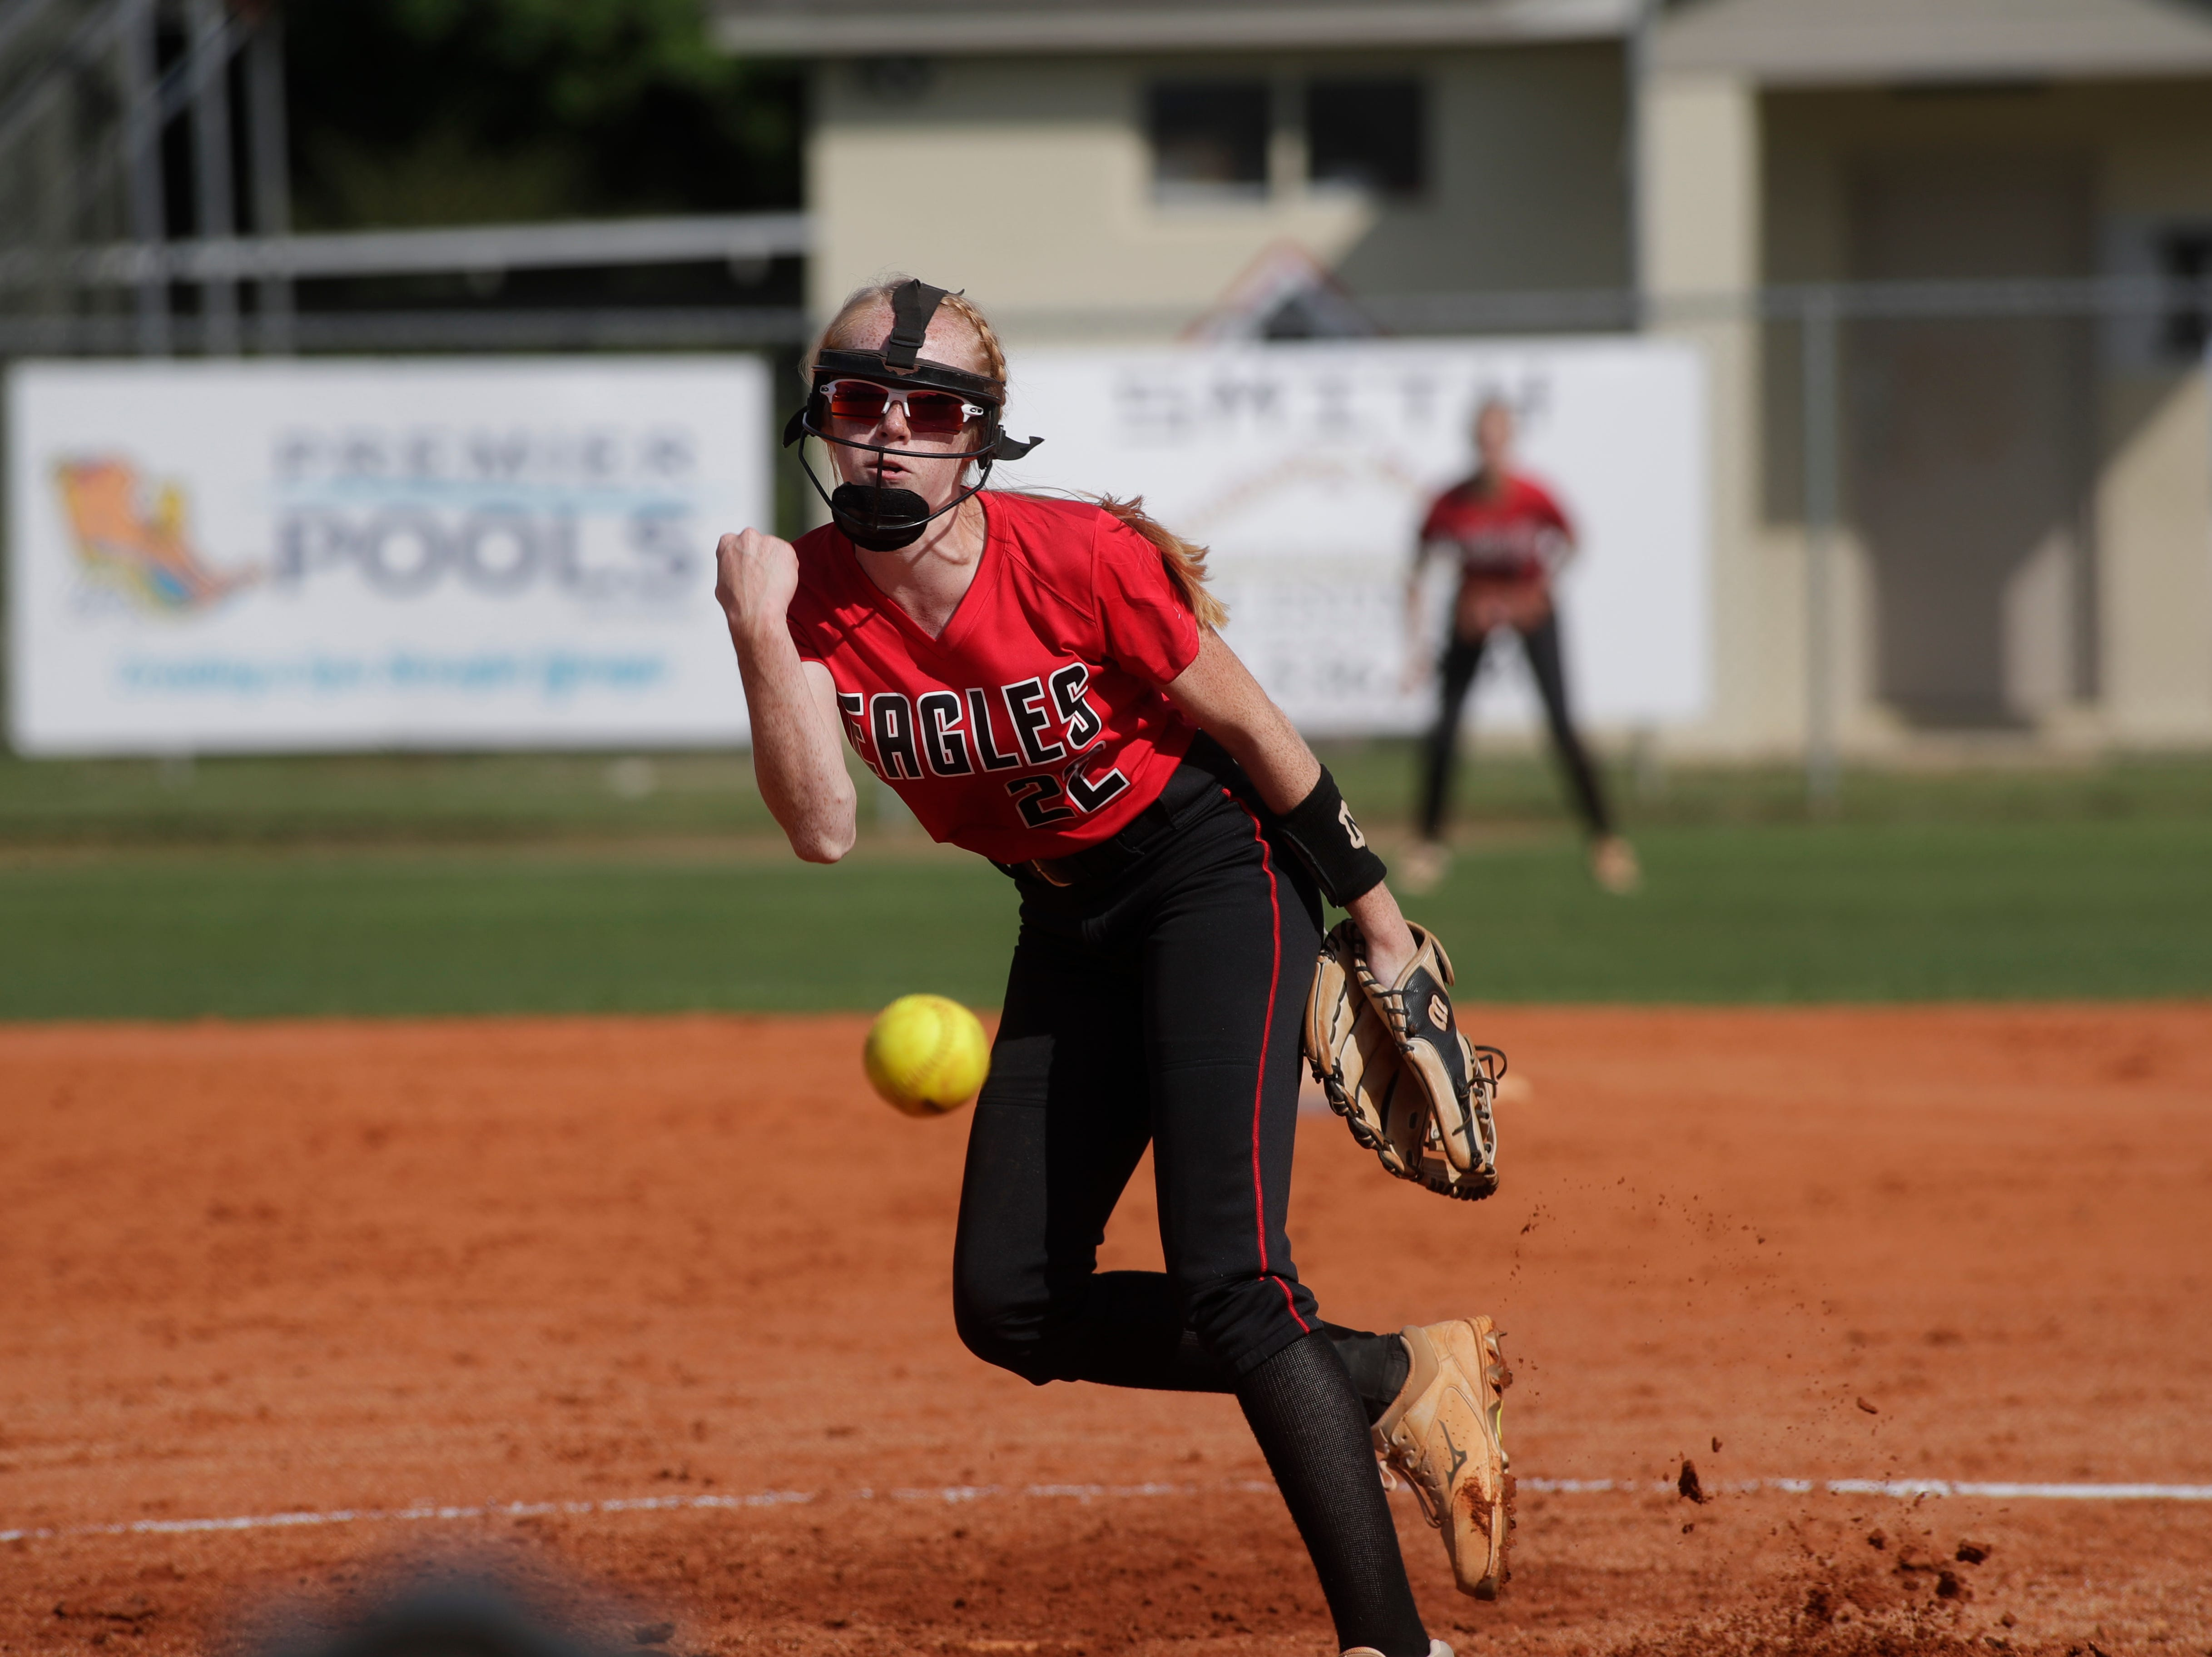 North Florida Christian's Maddie Mayo (22) throws a pitch during the 1-3A regional final game between NFC and University Christian at NFC Tuesday, May 14, 2019. UC defeated NFC 16 to 11 to advance to the state tournament.